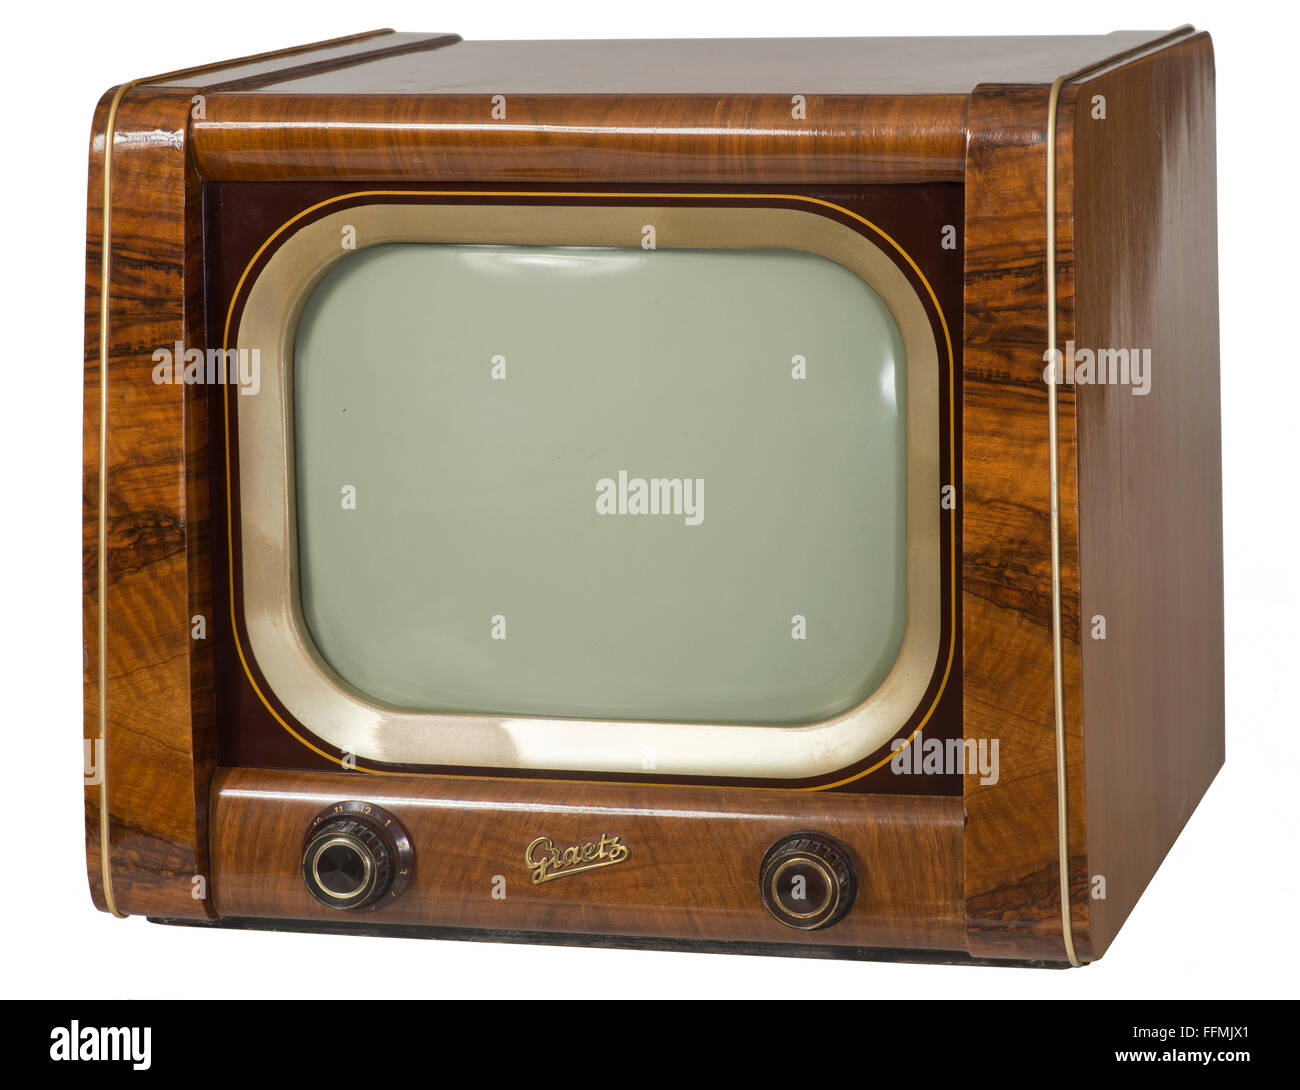 broadcast, television, Graetz tabletop television set F 6, 36 centimeter screen size, exotic wooden chassis, Germany, - Stock Image